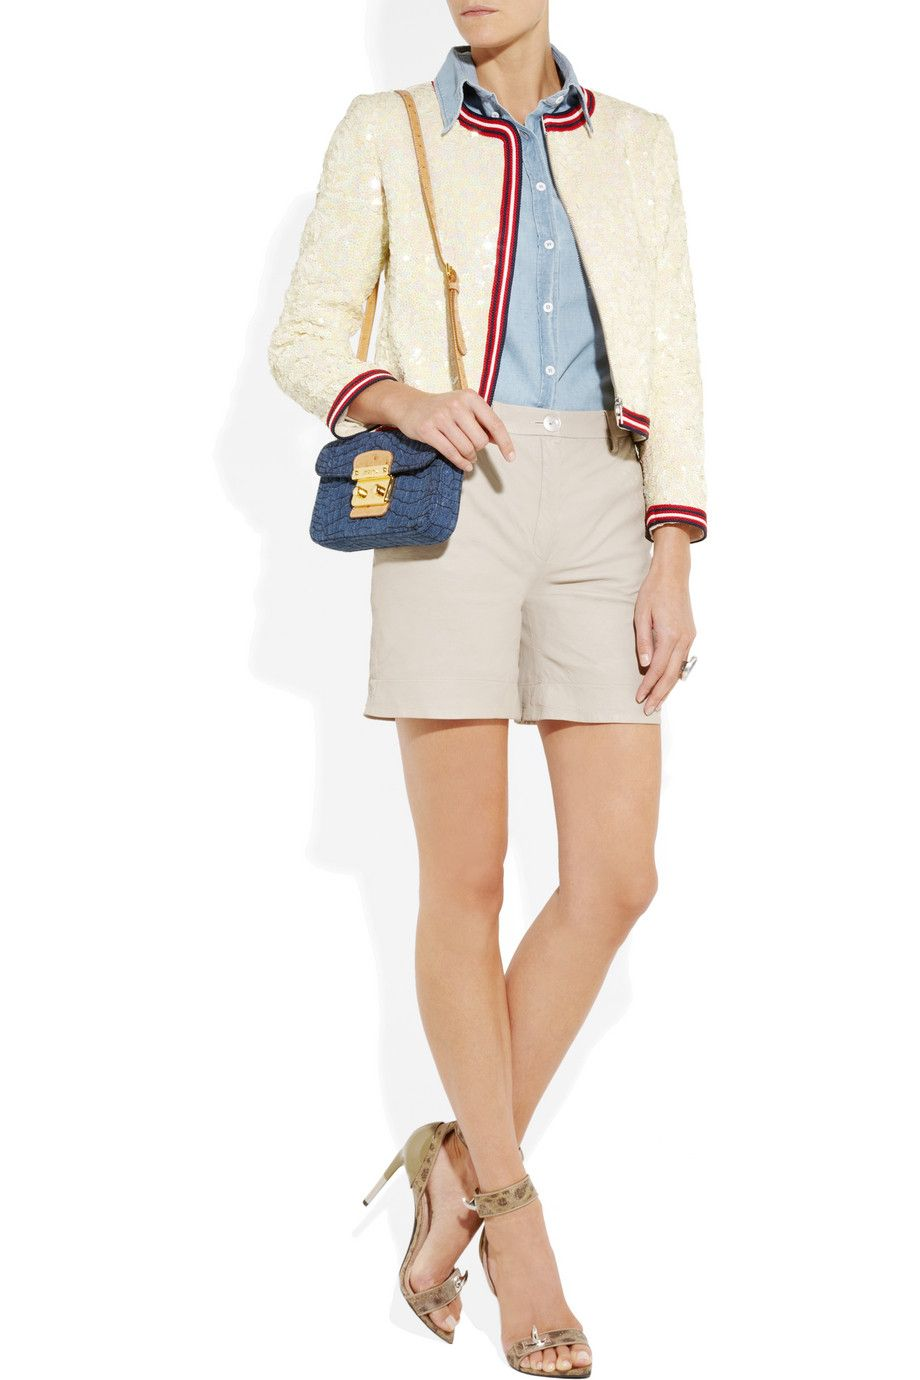 J.Crew Sequined linen bomber jacket  - seriously. sequins, linen, bomber jacket.. unreal.